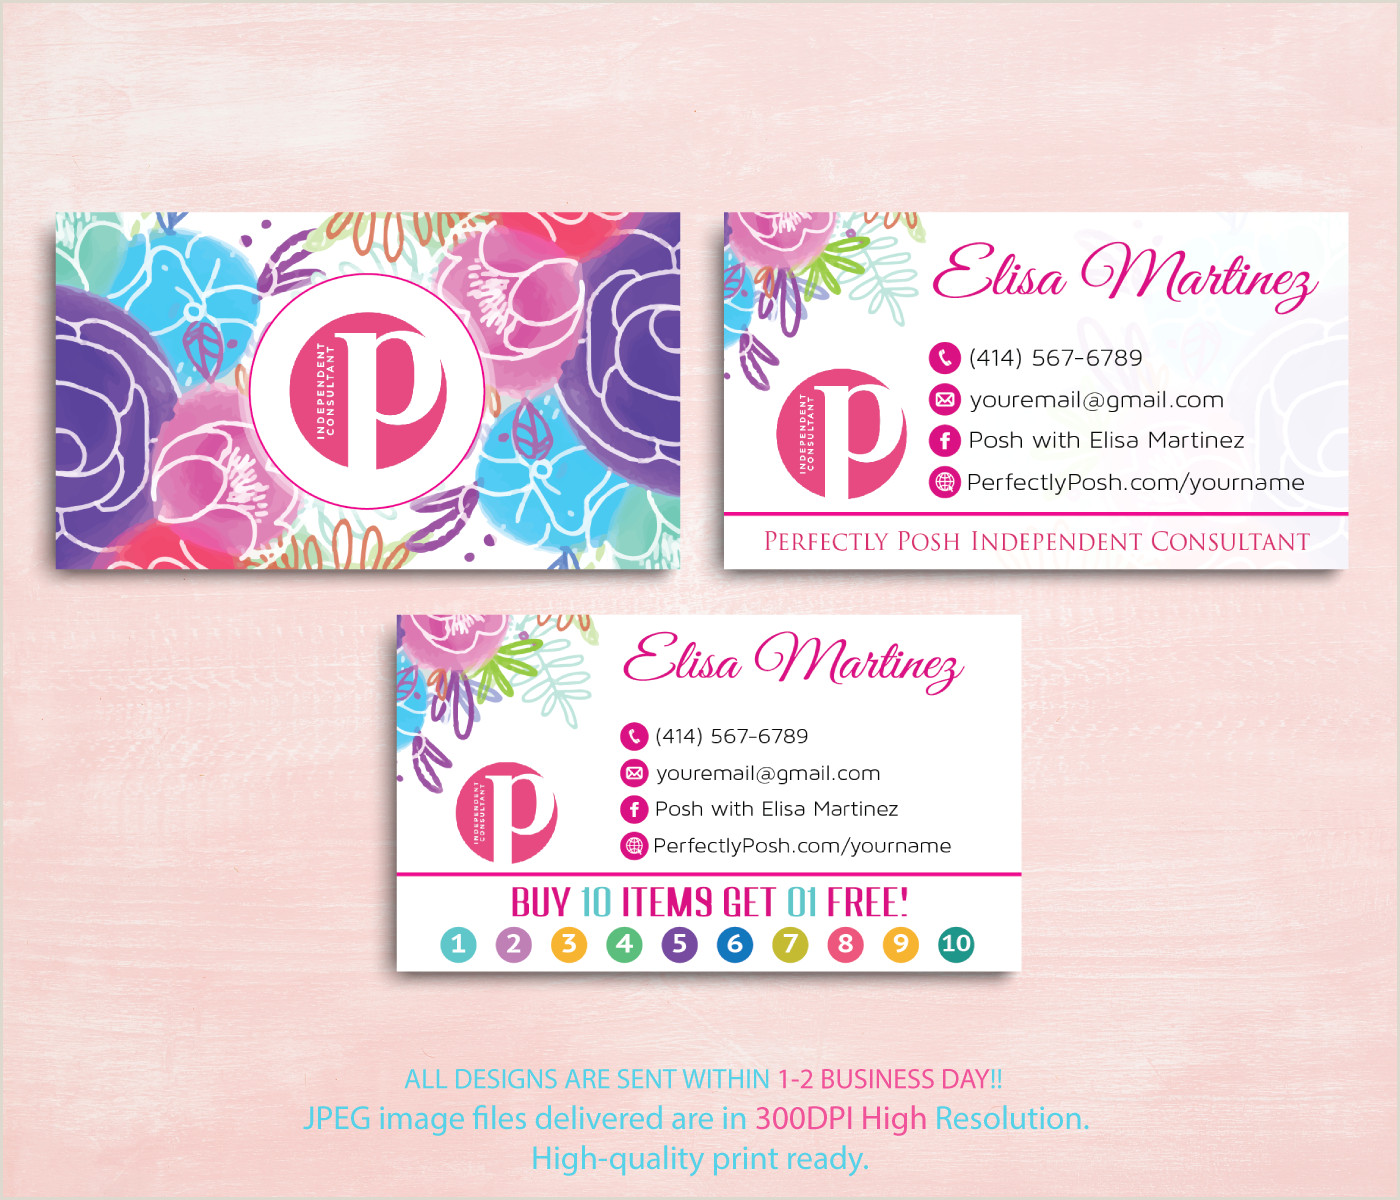 Perfectly Posh Business Card Ideas Perfectly Posh Business Cards Perfectly Posh Punch Card